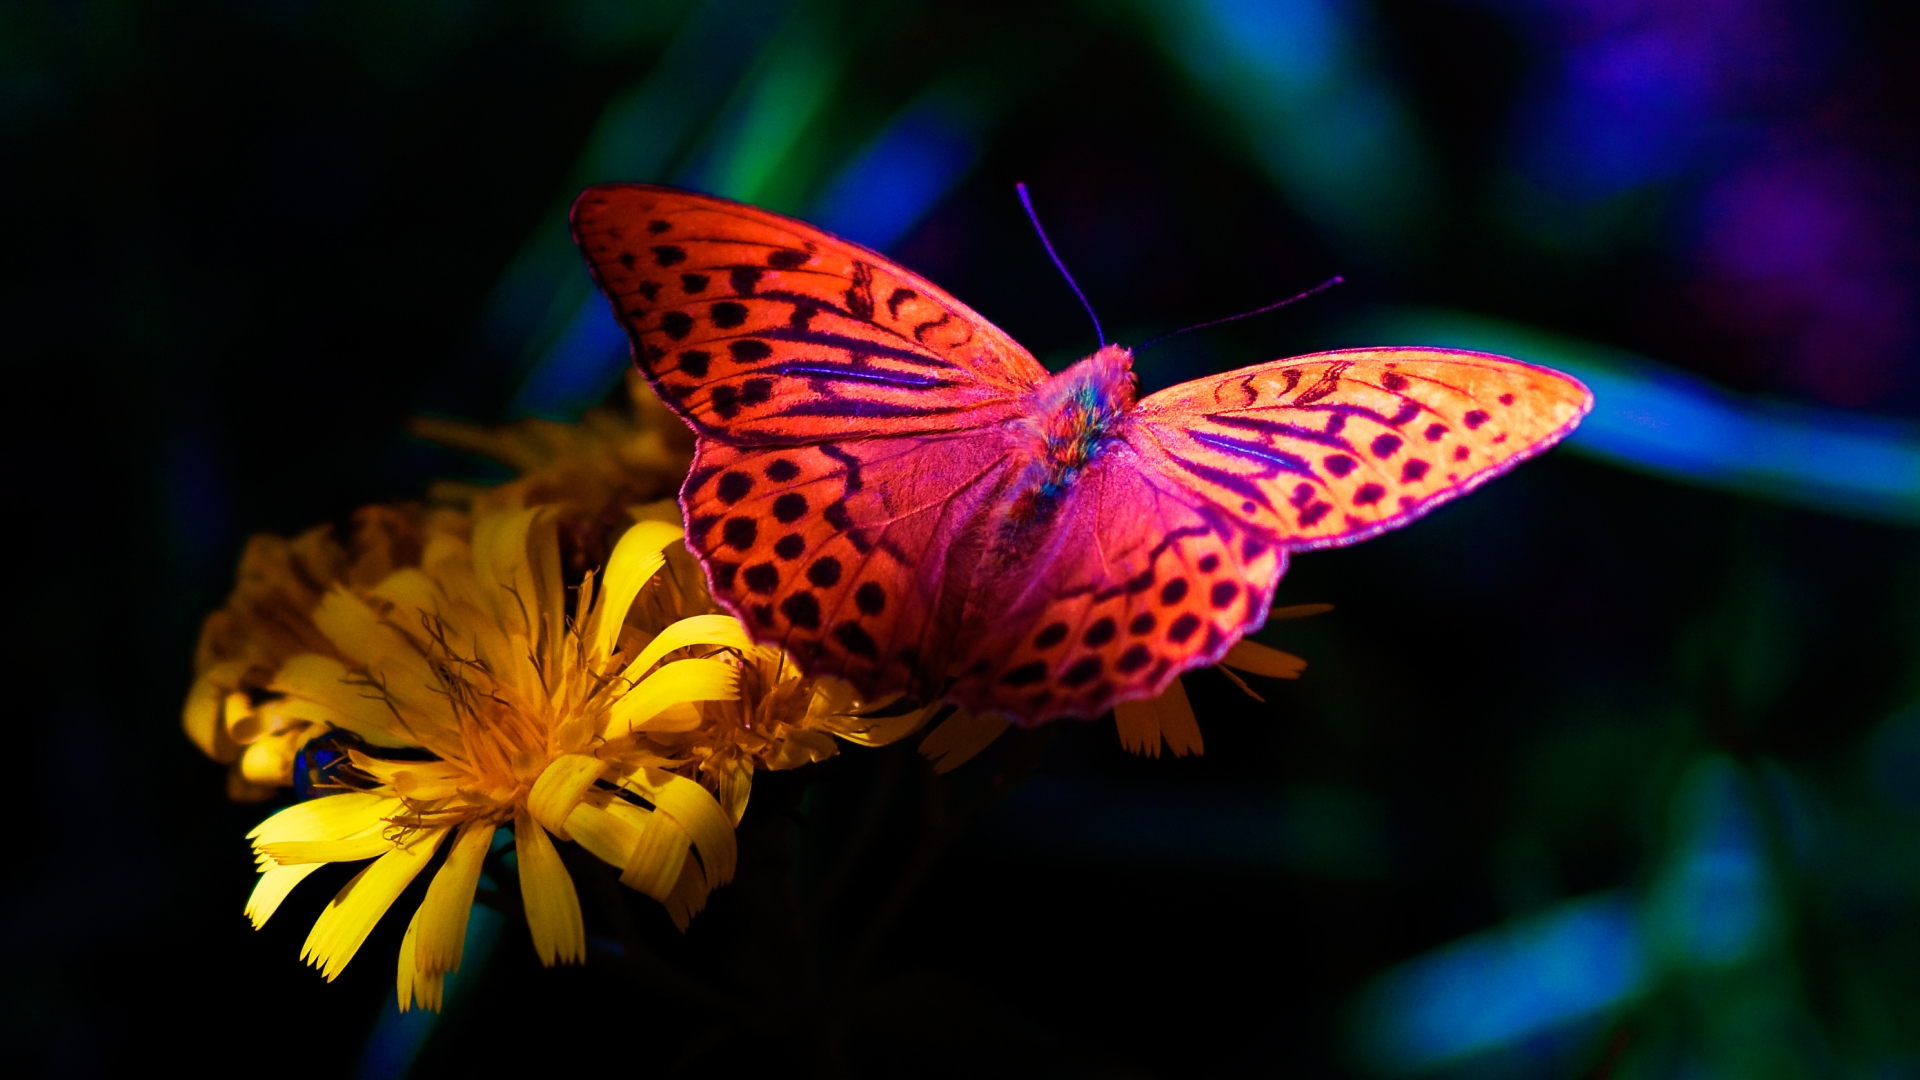 Flower and the butterfly